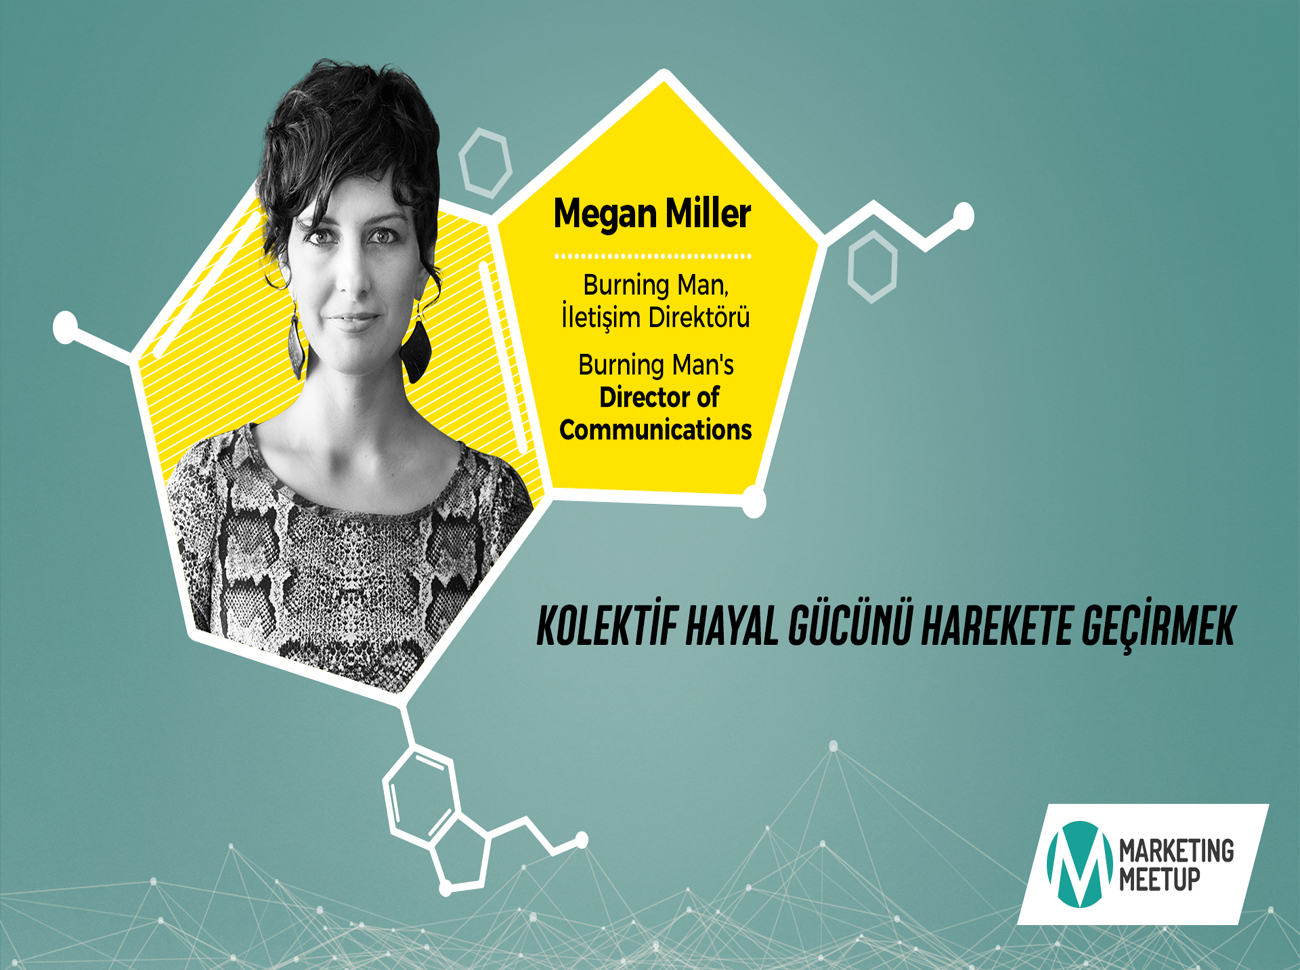 megan-miller-marketing-meetup-kapsaminda-turkiyeye-geliyor